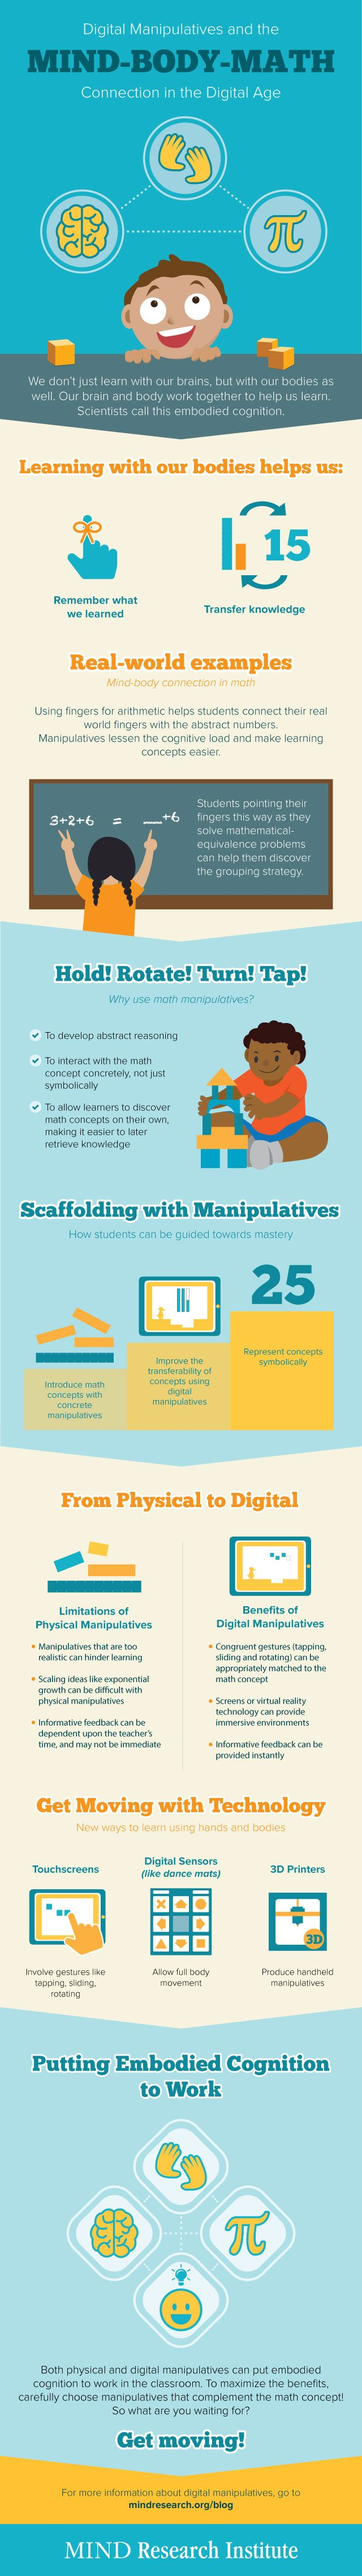 Mind-Body Math: Manipulatives in the Digital Age Infographic ...